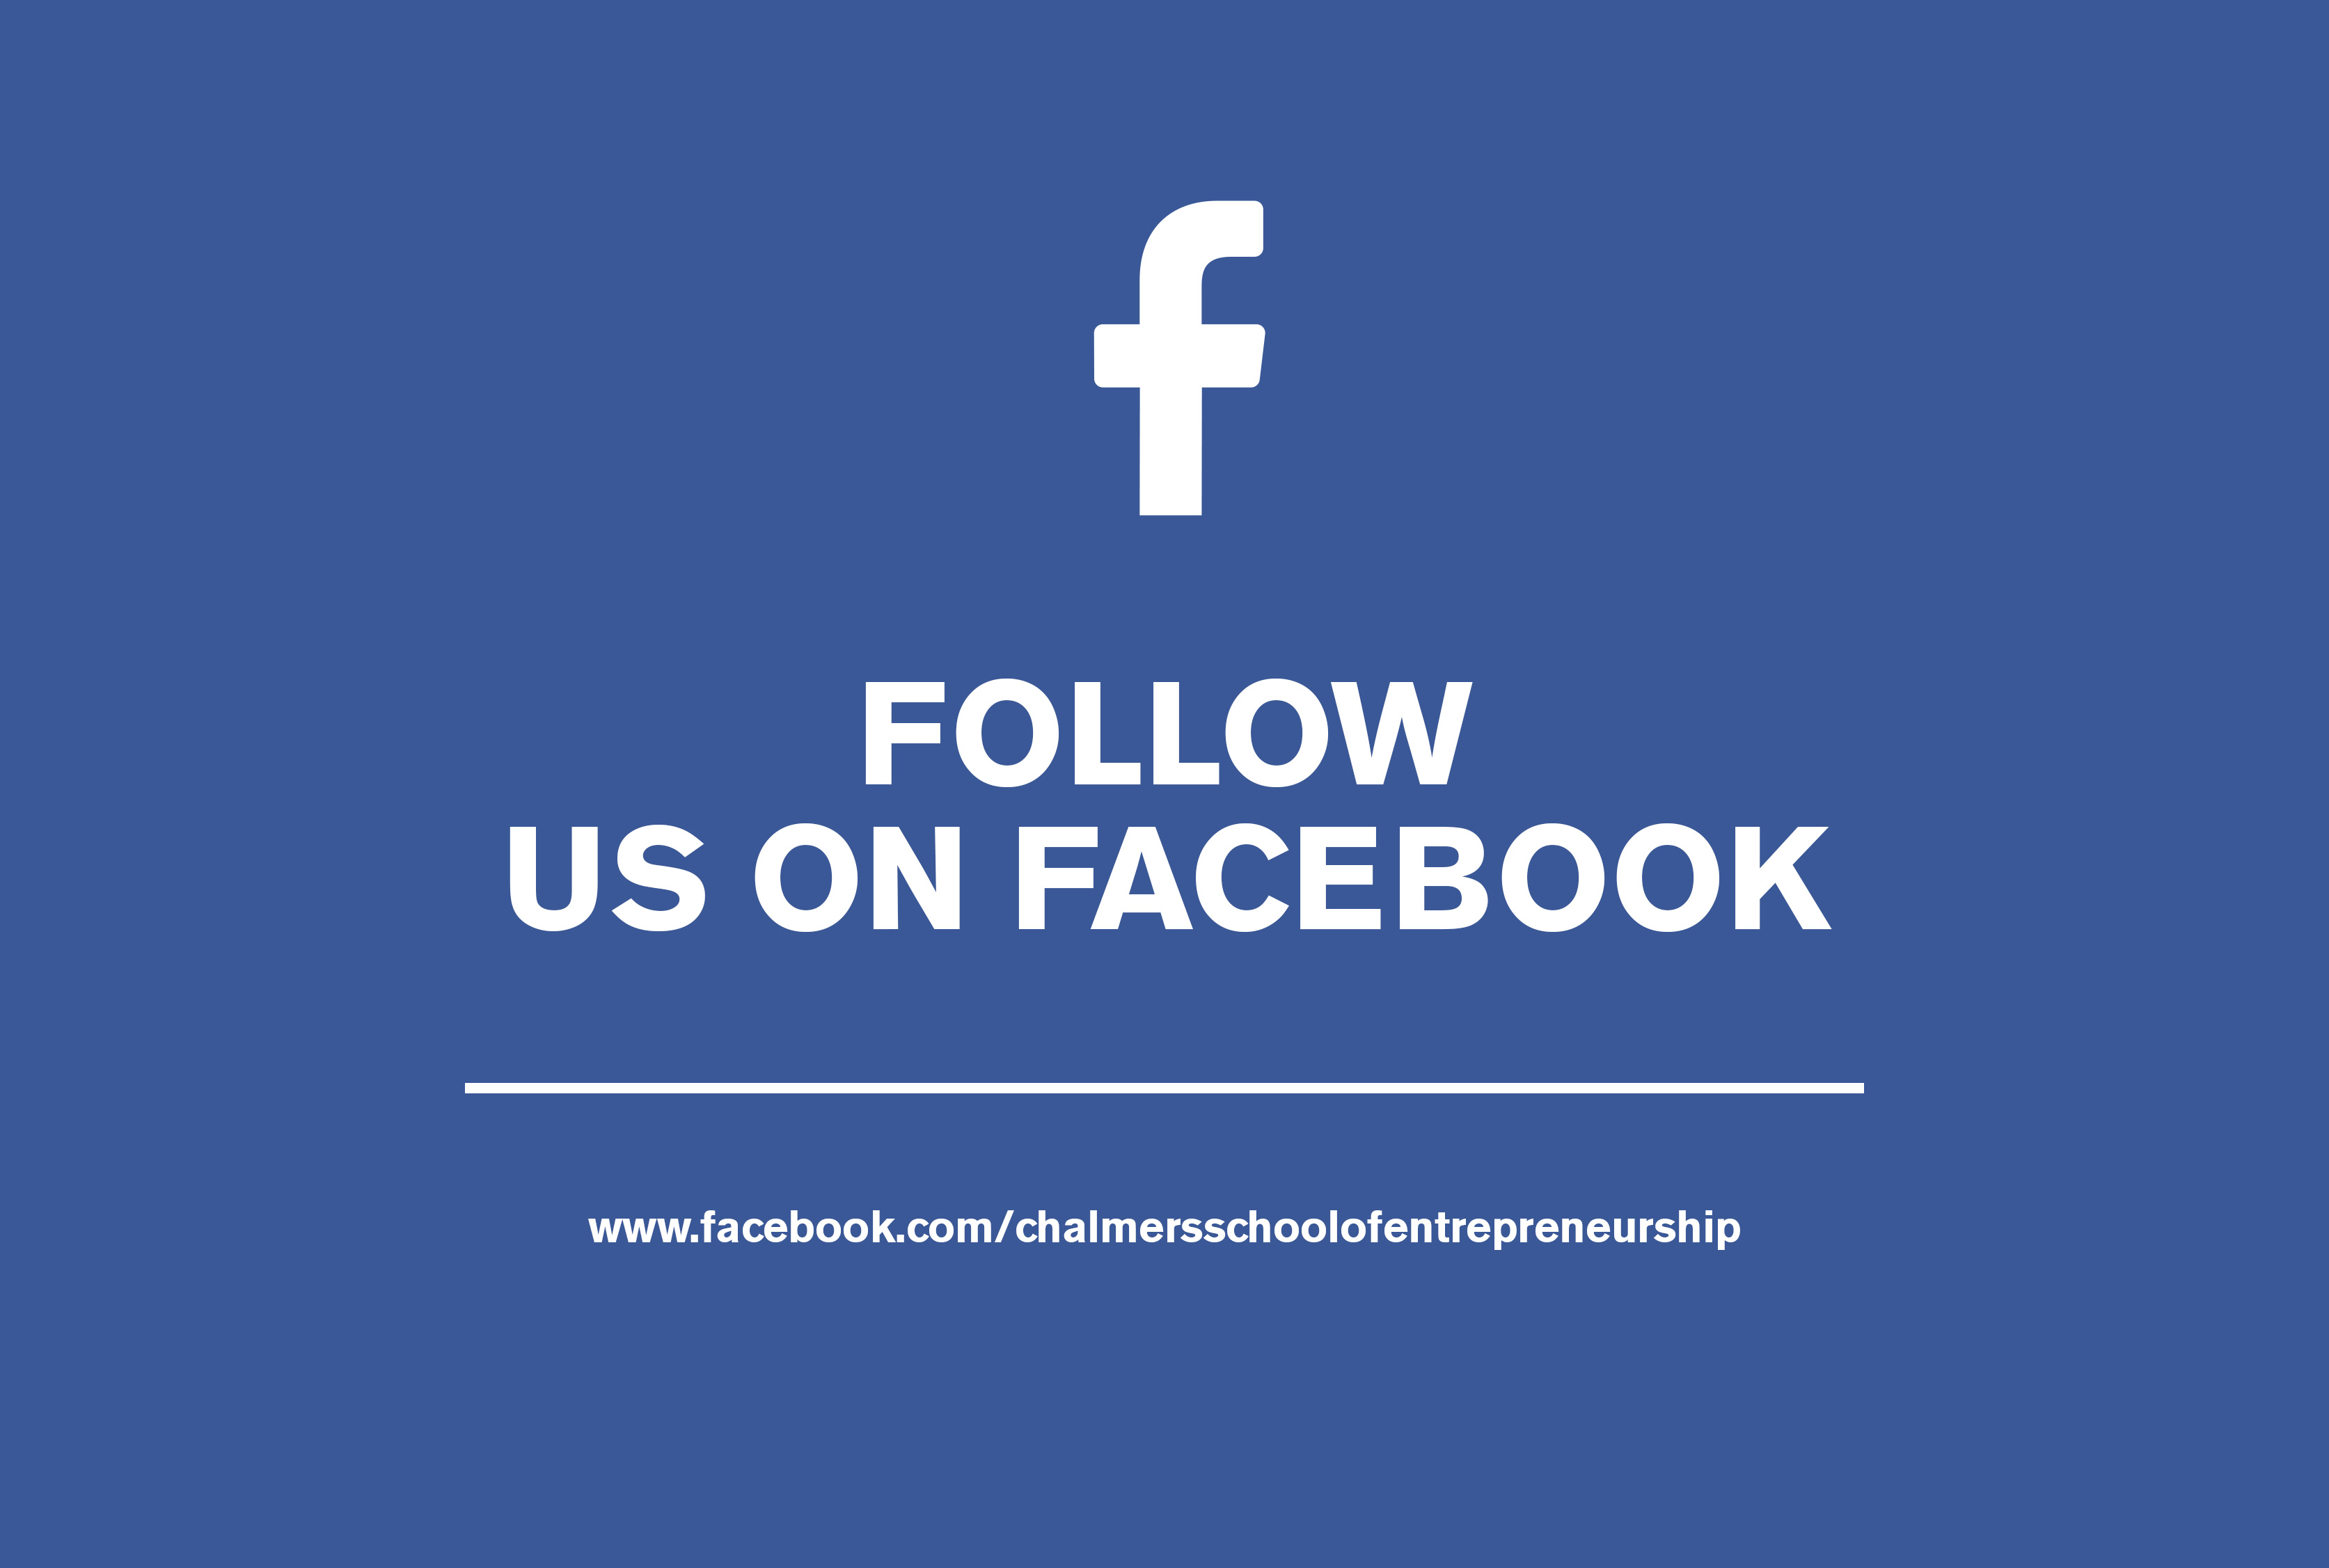 Facebook Chalmers School of Entrepreneurship